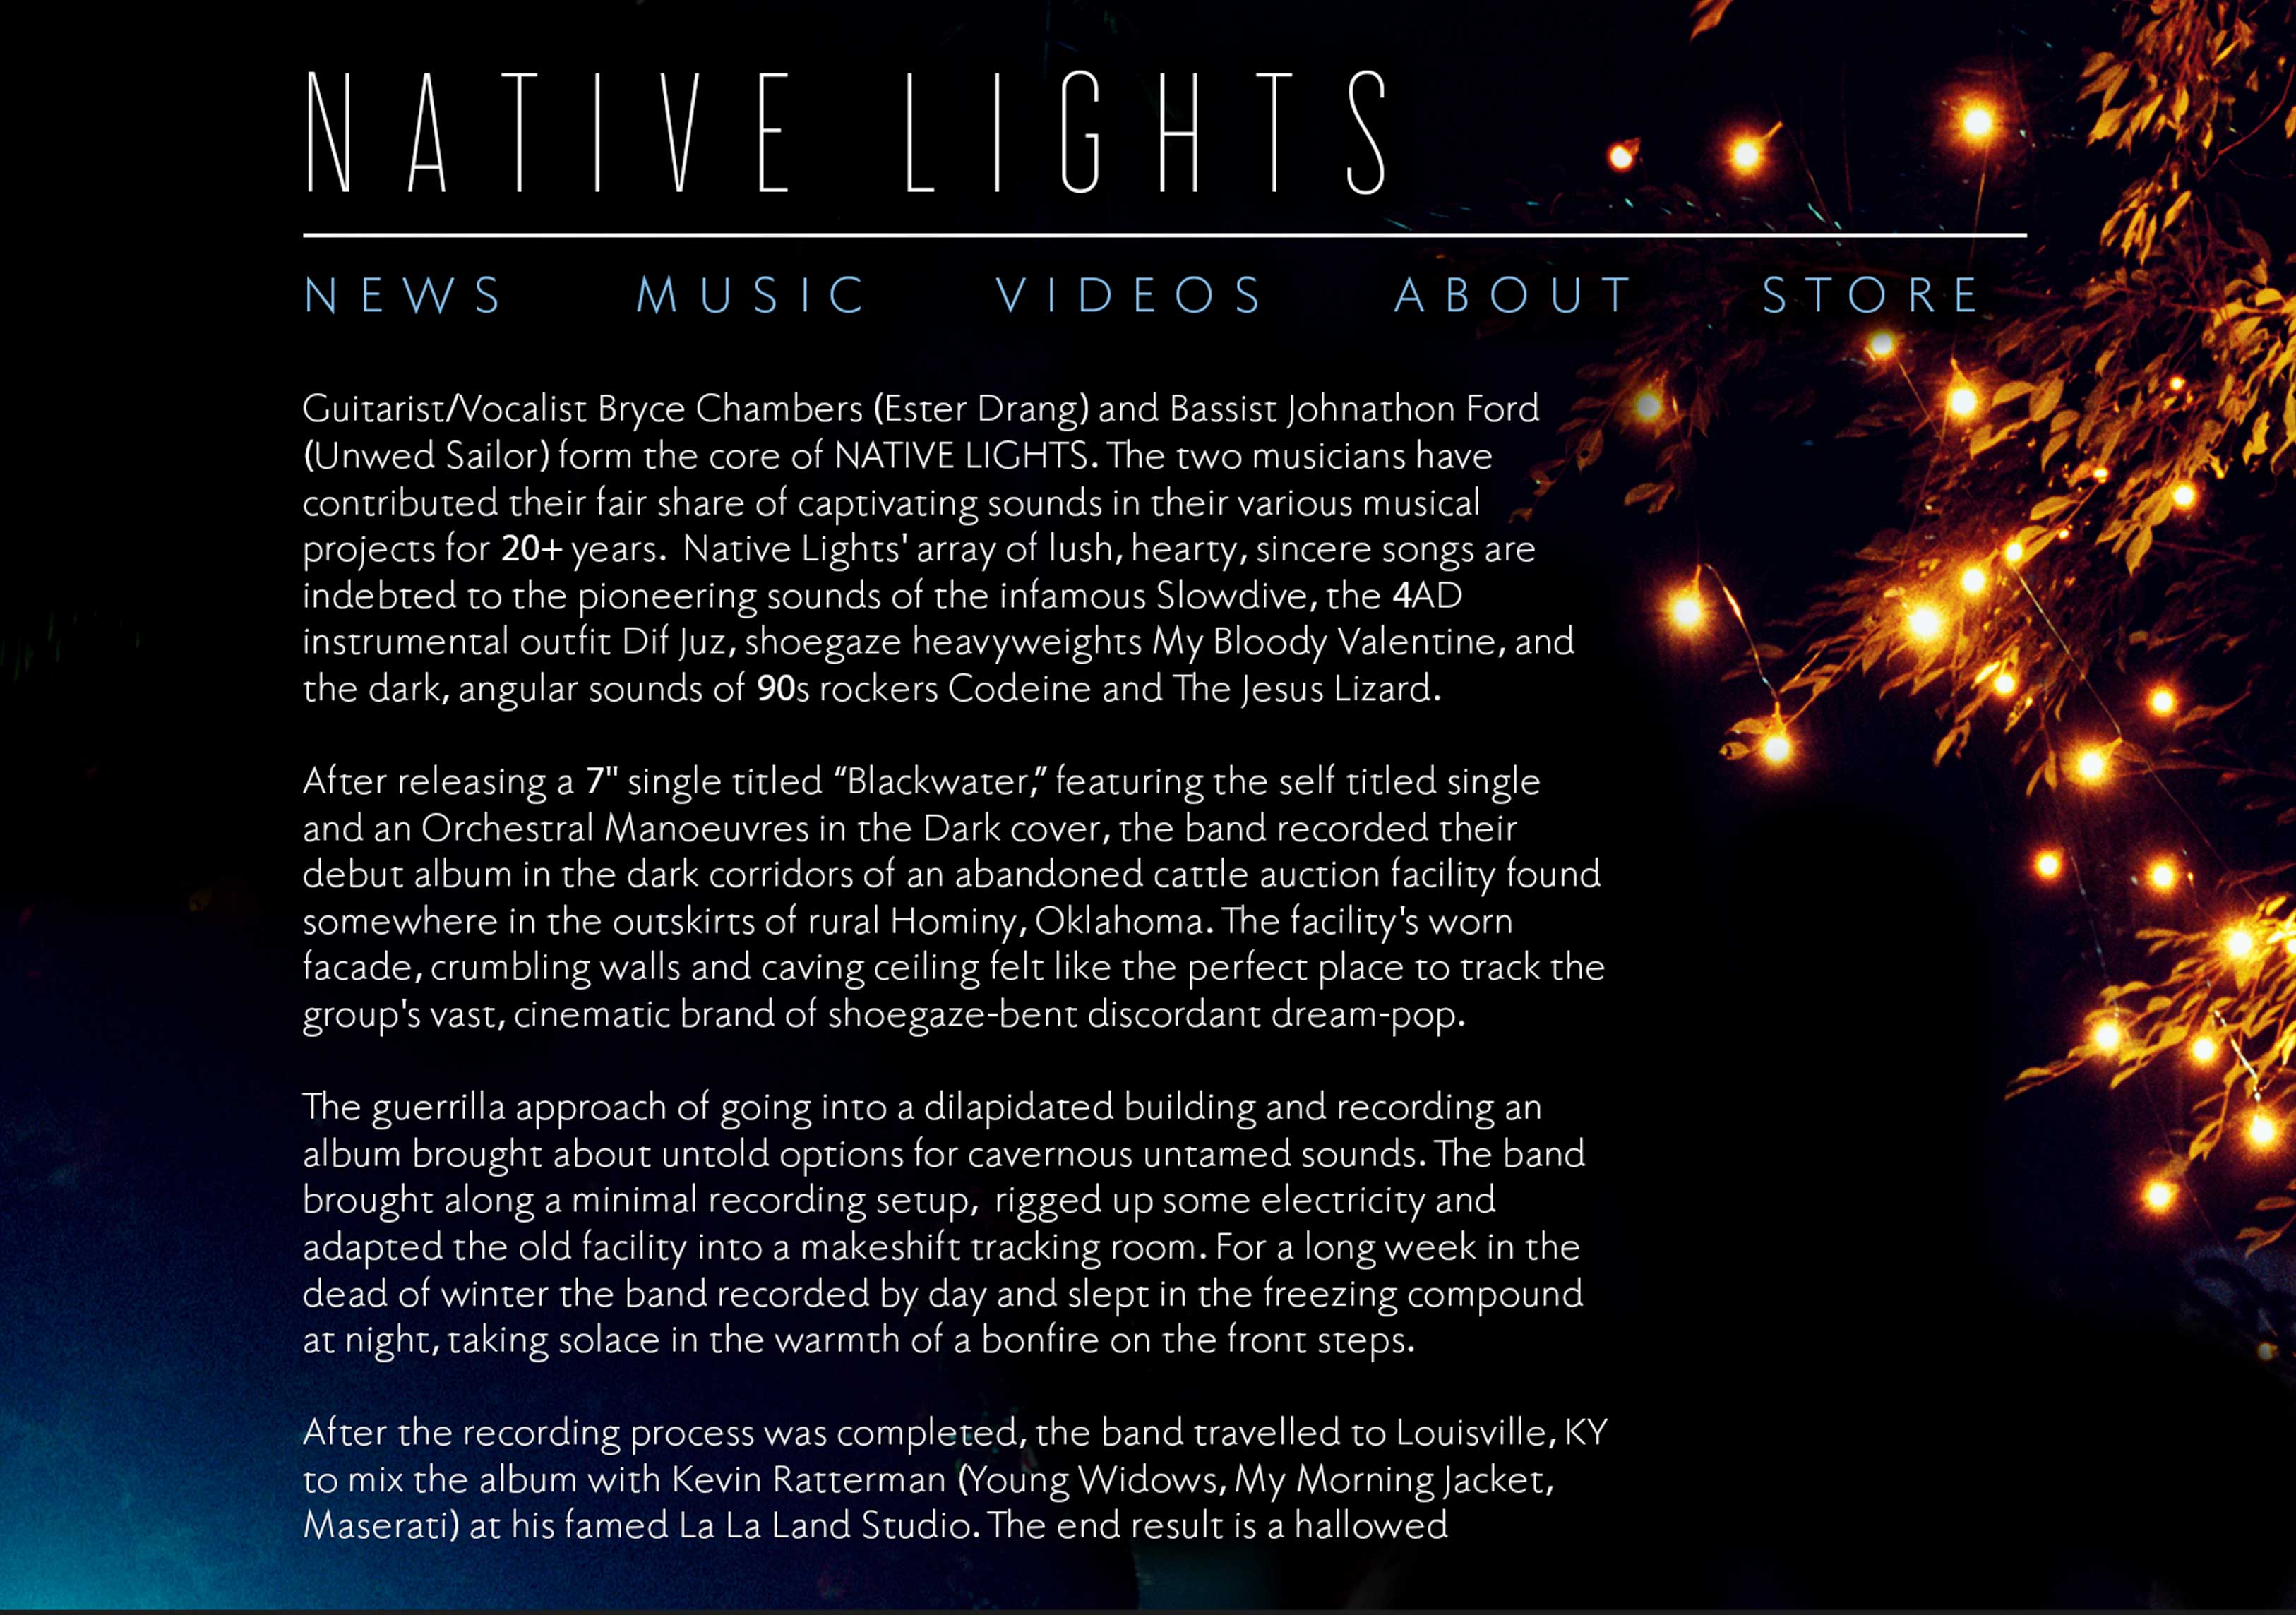 Native Lights